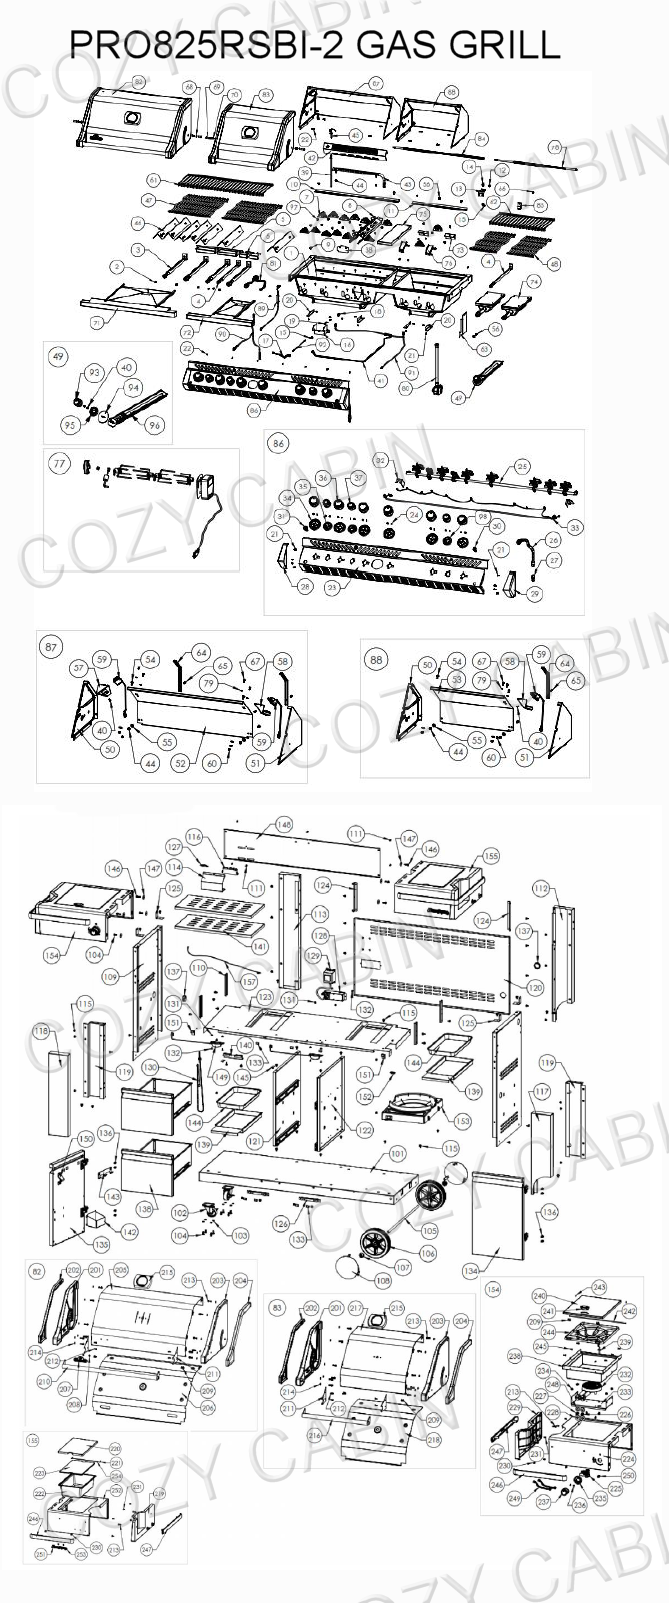 Traeger Grill Wiring Diagram on